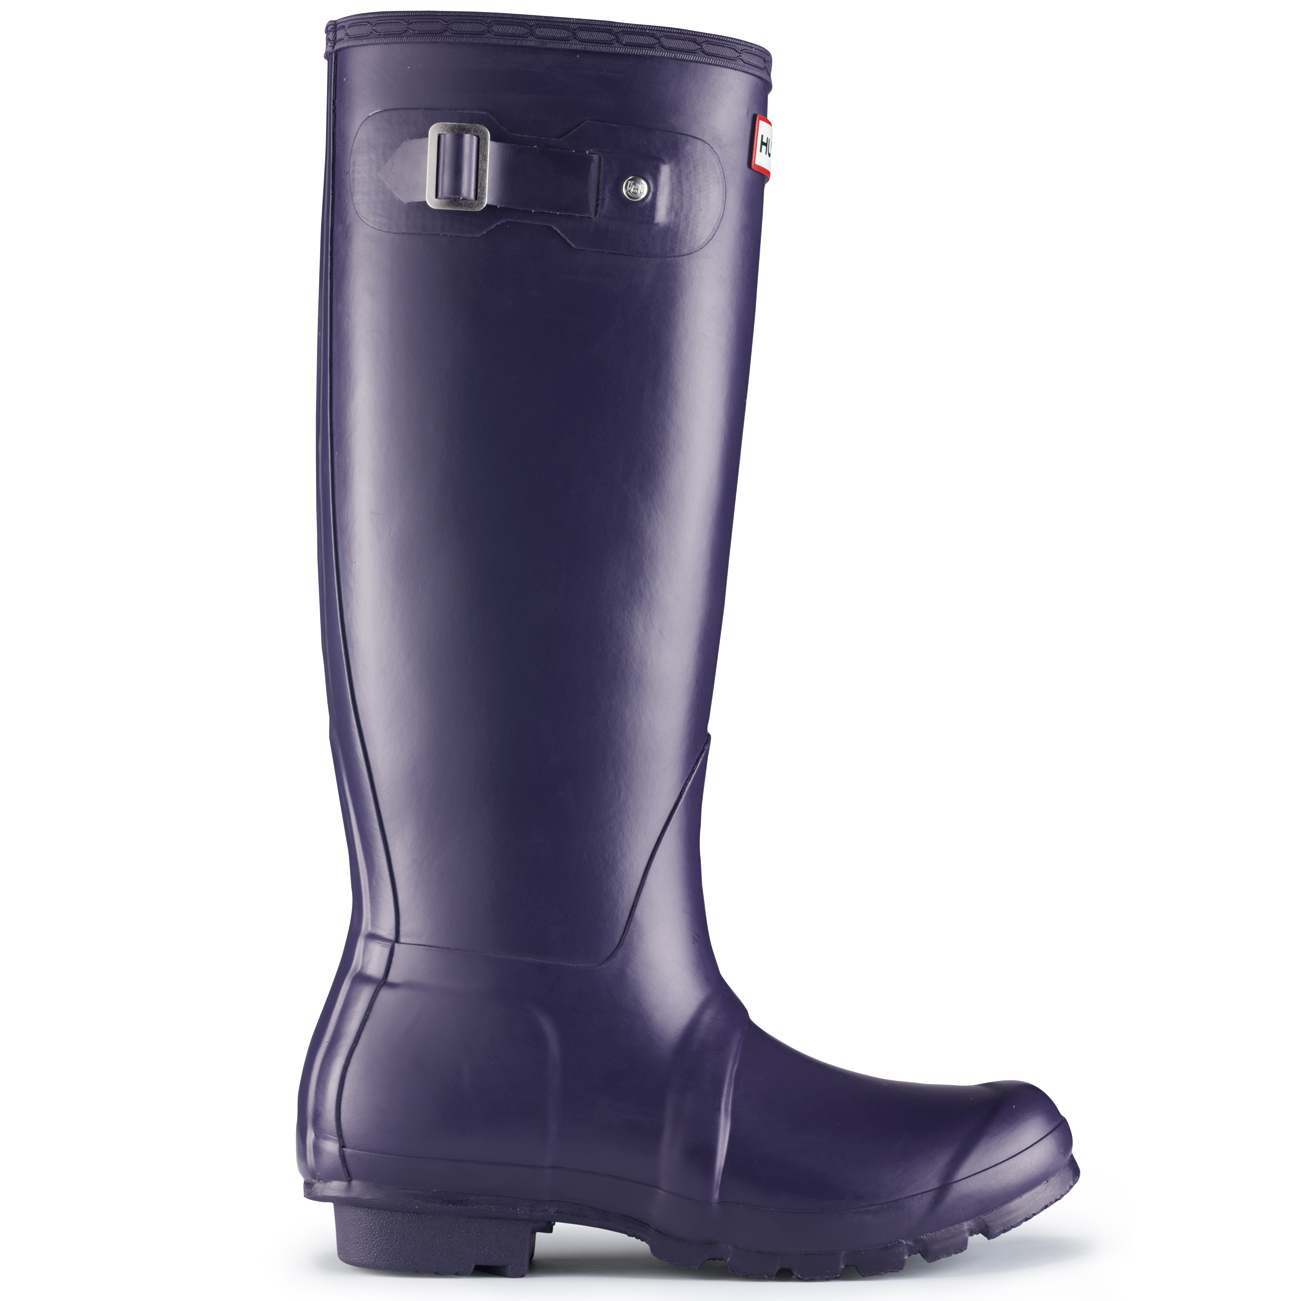 DAMEN-SCHUHE-HUNTER-GUMMISTIEFEL-STIEFEL-ORIGINAL-TALL-REGNEN-WELLIES-EU-36-41